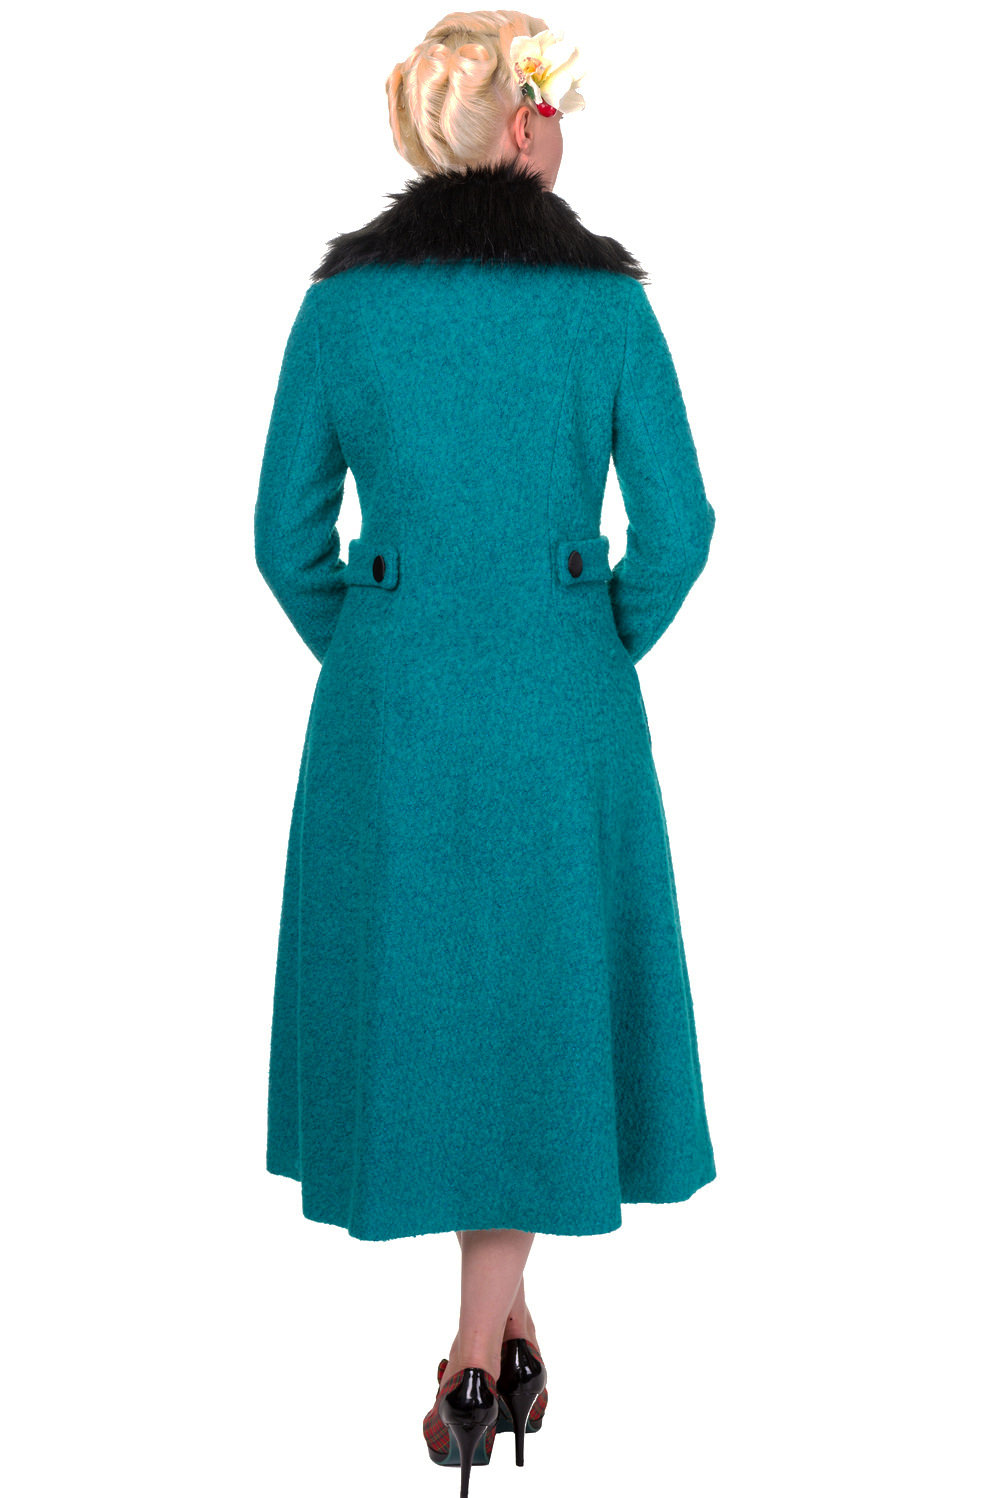 Banned By Dancing Days Simple Game Emerald Winter Coat